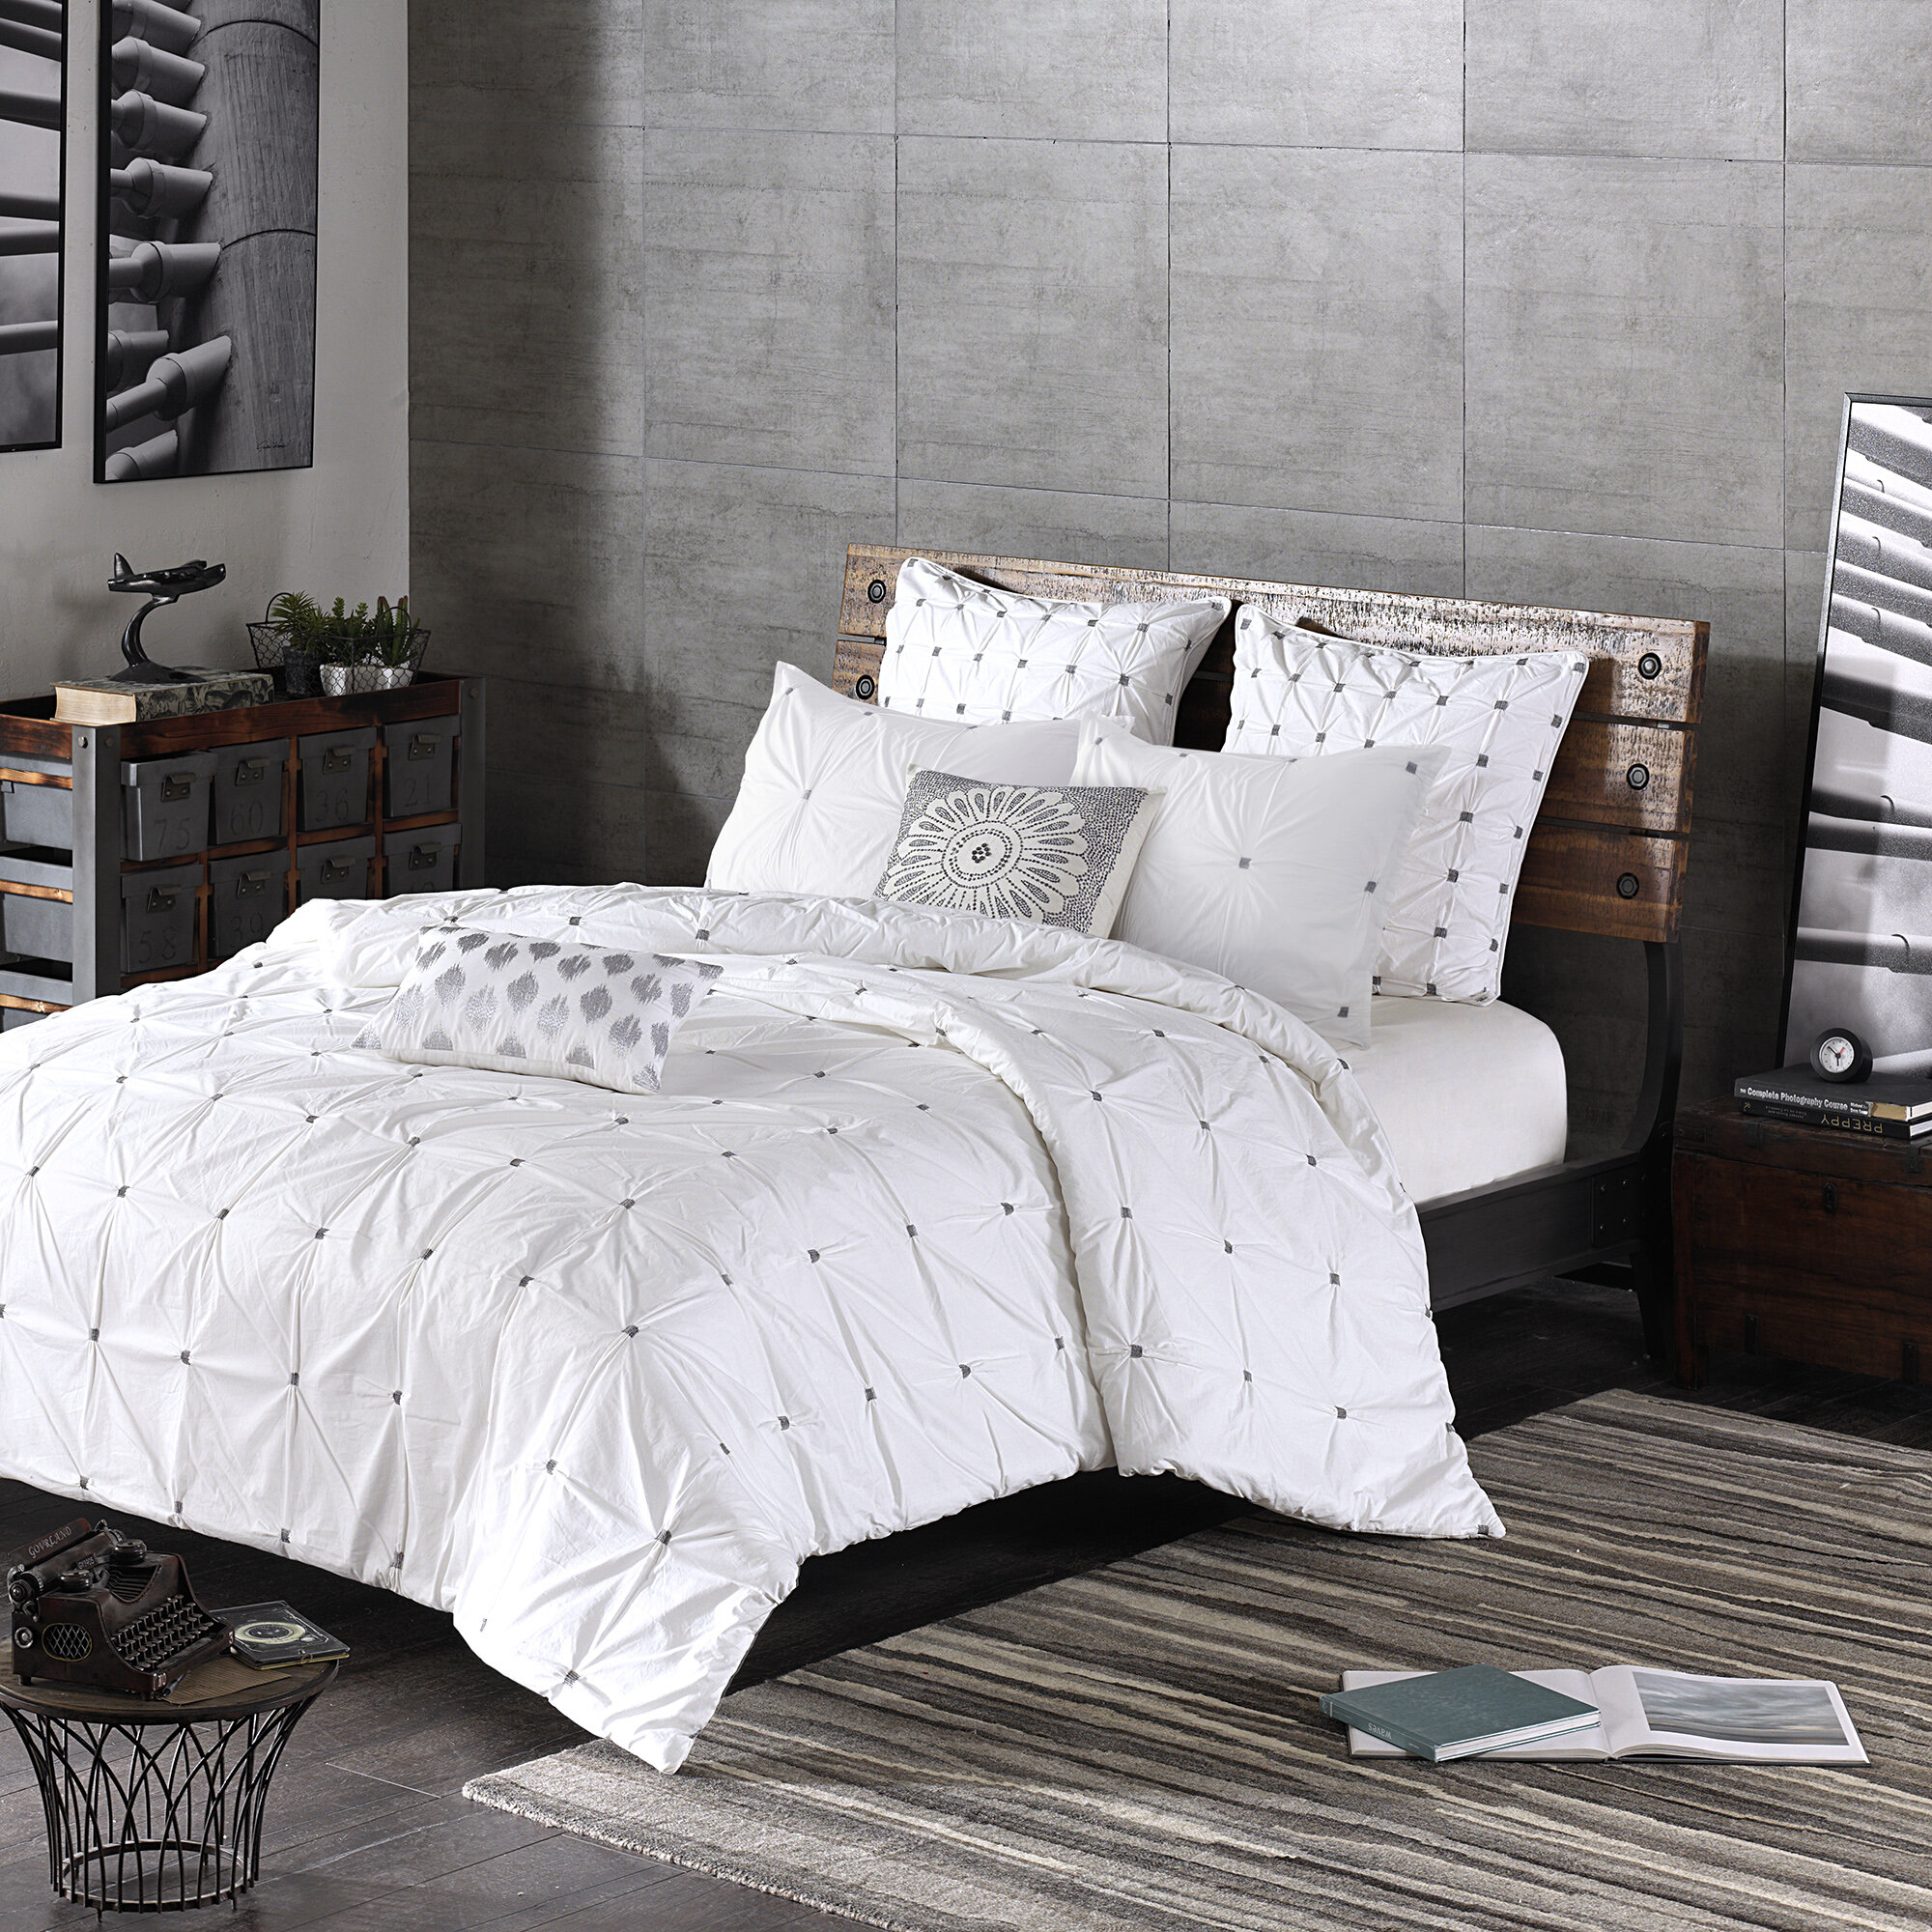 enjoy time hope have made peach beddley your the difference cover com we img bedding in truly cotton and products a duvet comforter saved